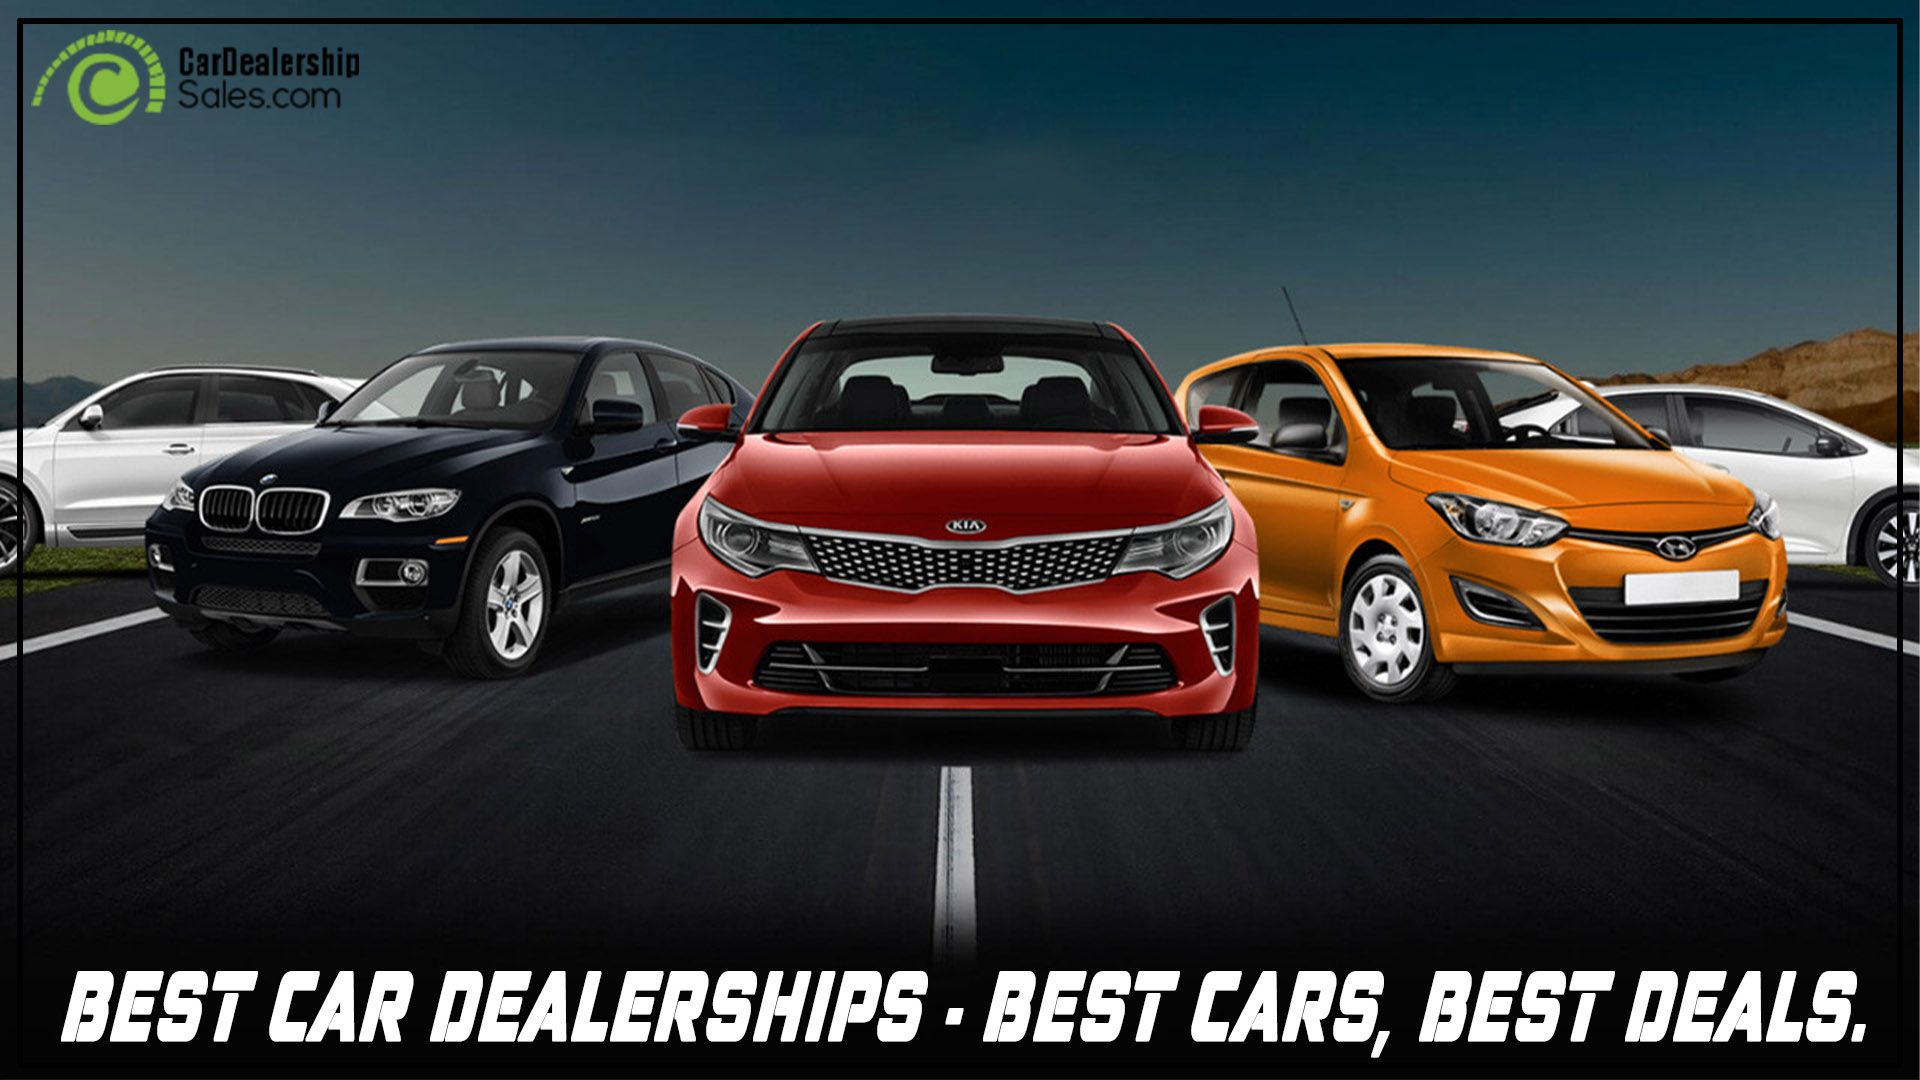 Pin by Car Dealers on Car dealerships near me Best car